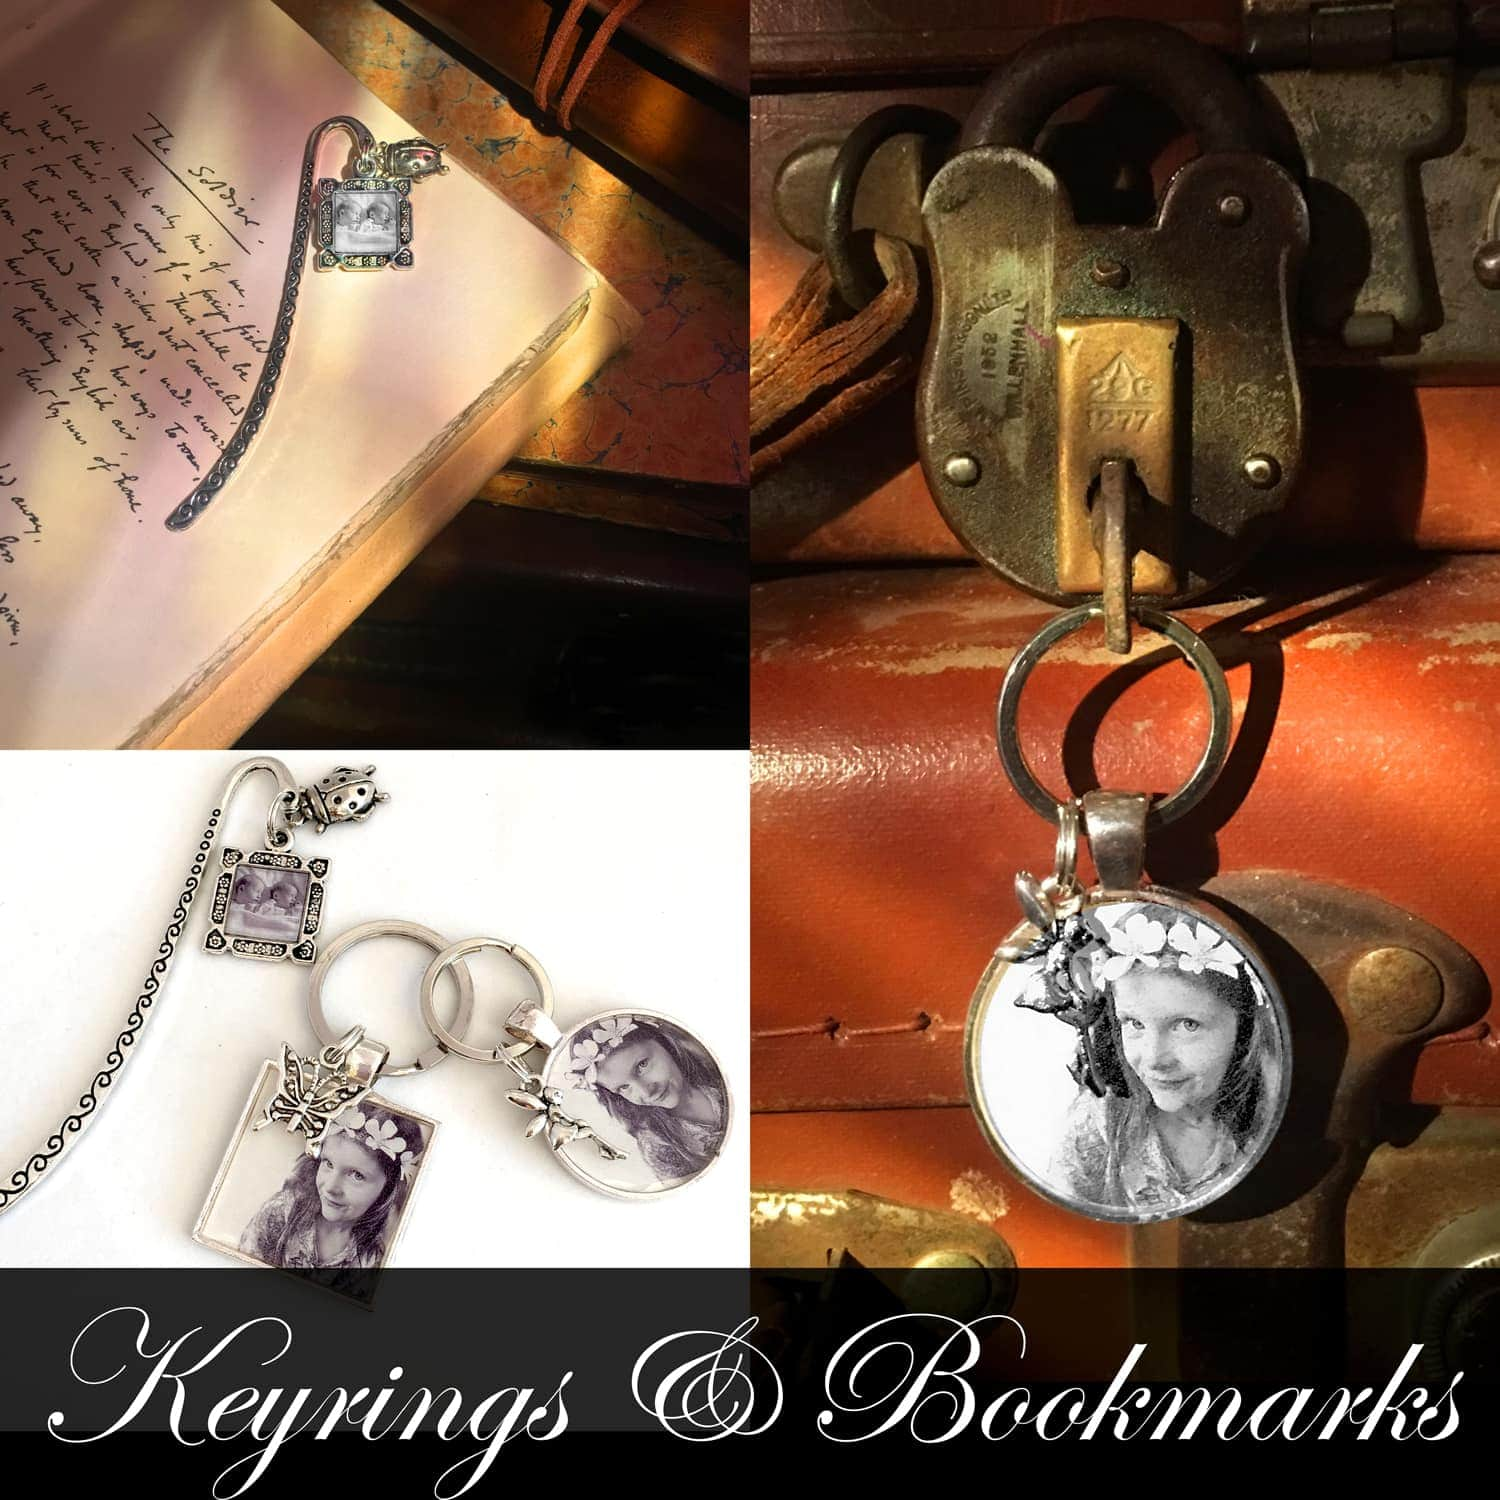 Keyrings and Bookmarks